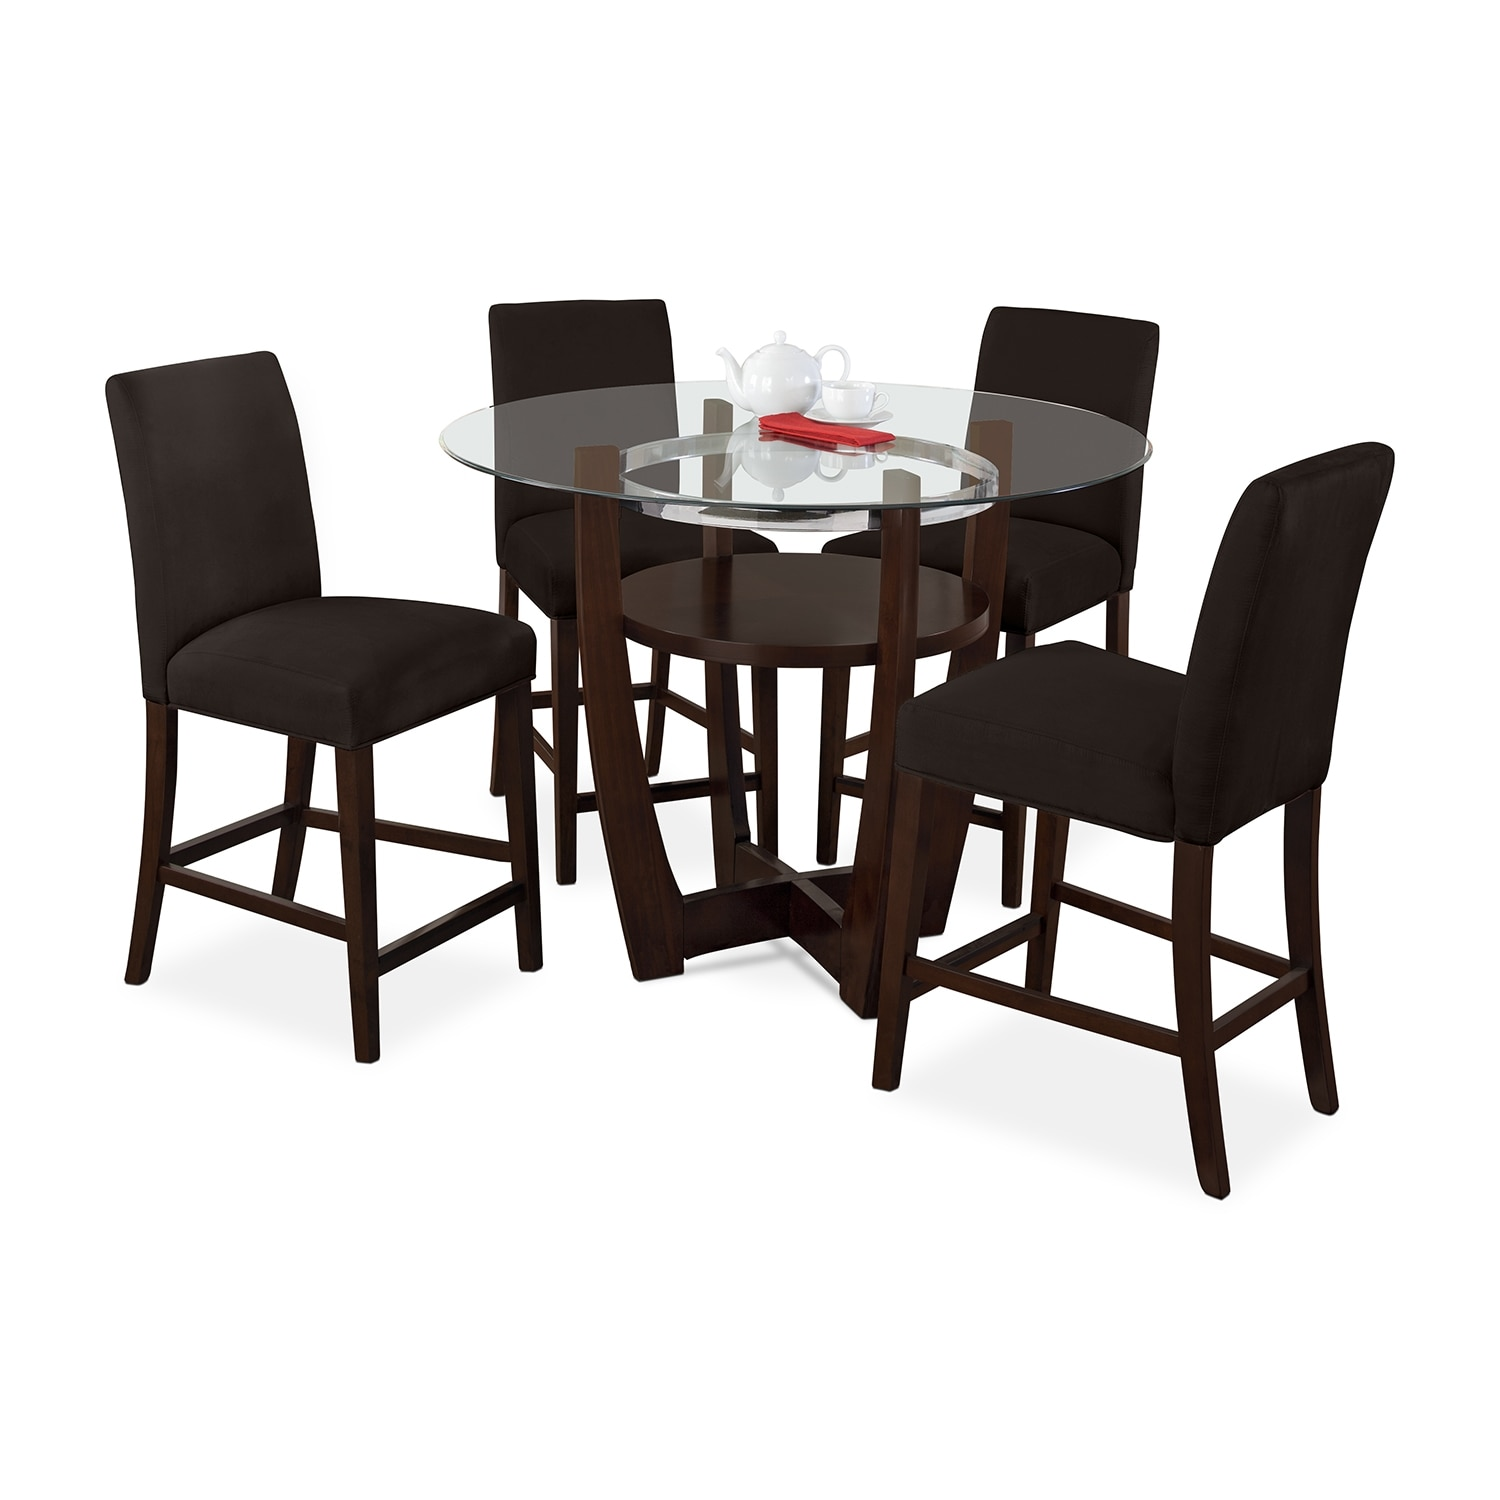 Dining Room Furniture - Alcove Counter-Height Dinette with 4 Side Chairs - Chocolate